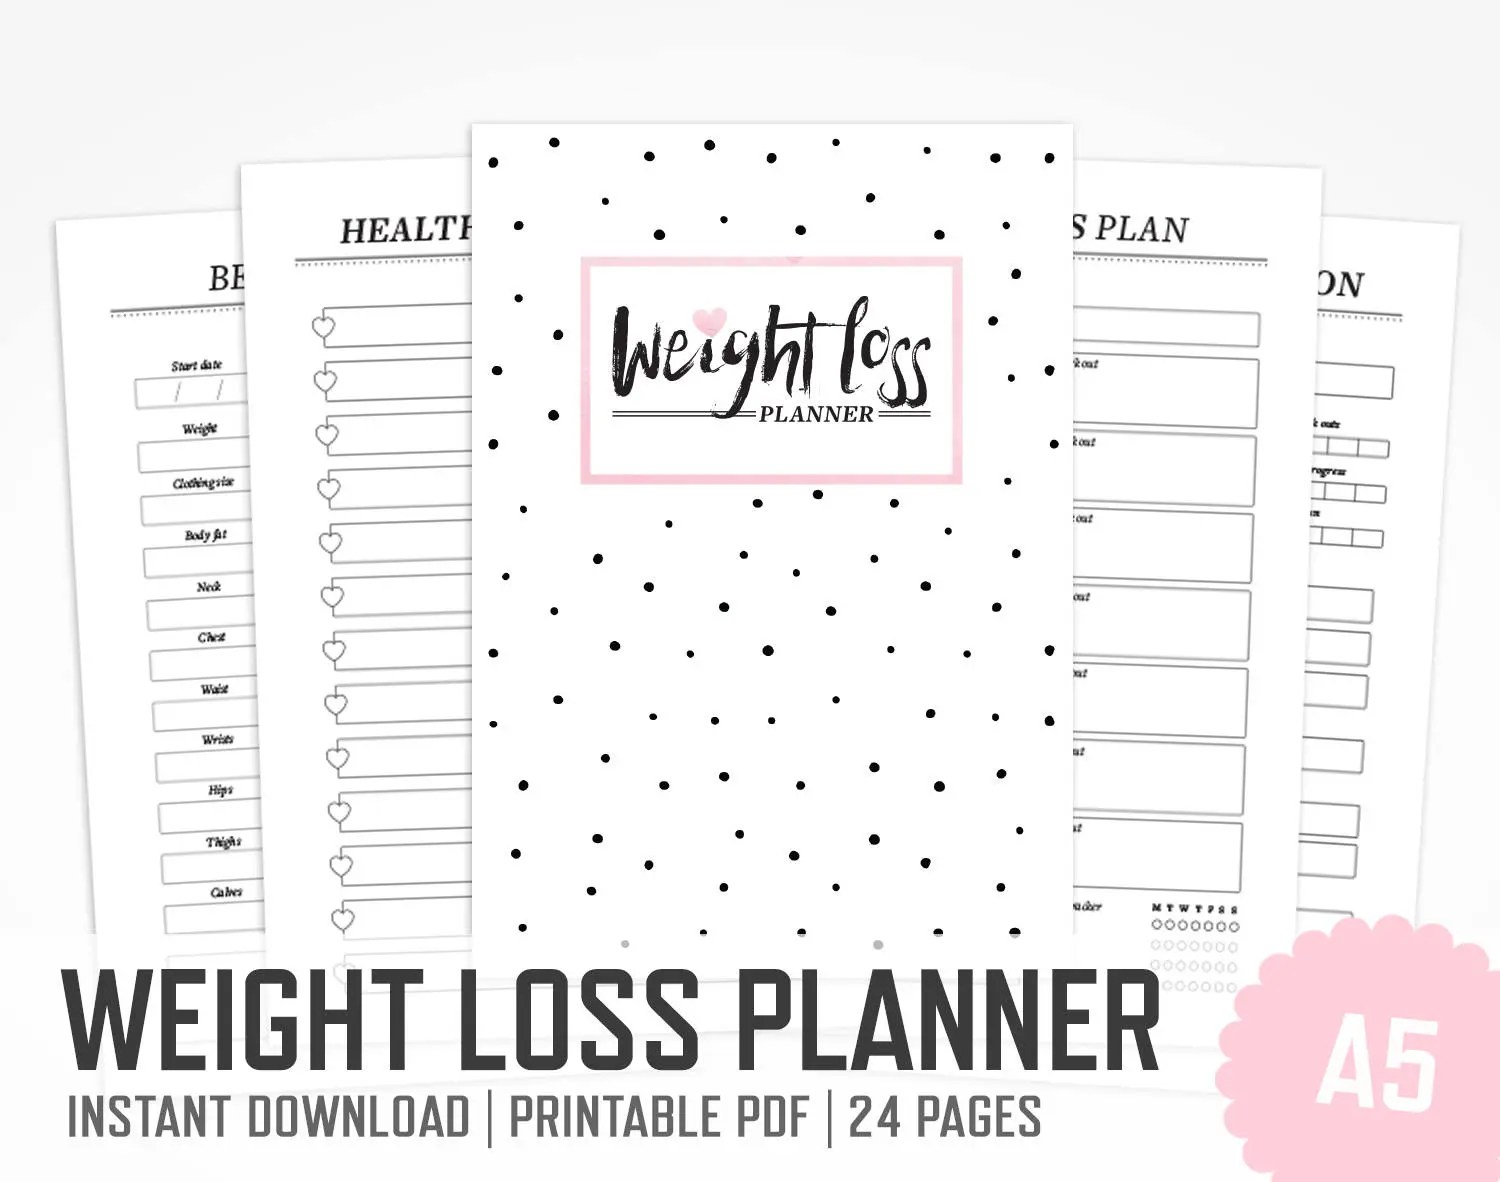 Weight Loss Planner / A5 / Work Out Planner Fitness Lifestyle Etsy